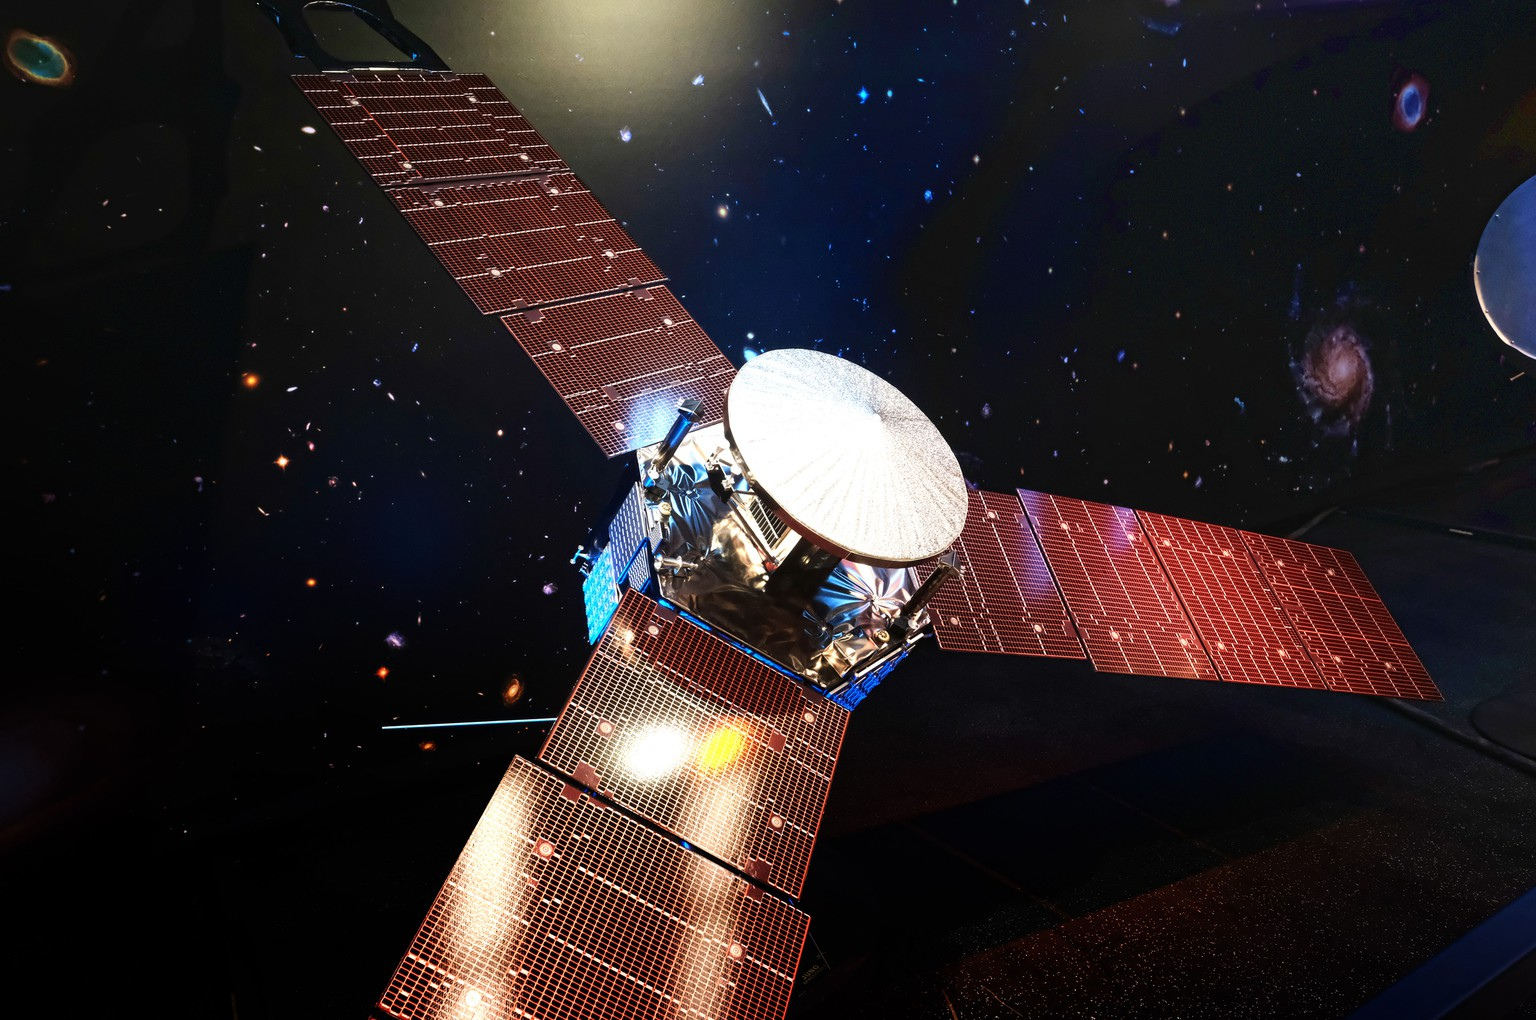 A 1/5 scale model size of NASA's solar-powered Juno spacecraft is displayed at the Jet Propulsion Laboratory in Pasadena, Calif. on Friday, July 1, 2016. The spacecraft is on the final leg of a five-year, 1.8 billion-mile voyage to the biggest planet in the solar system. It's expected to reach Jupiter and go into orbit around the planet on July 4. (AP Photo/Richard Vogel)